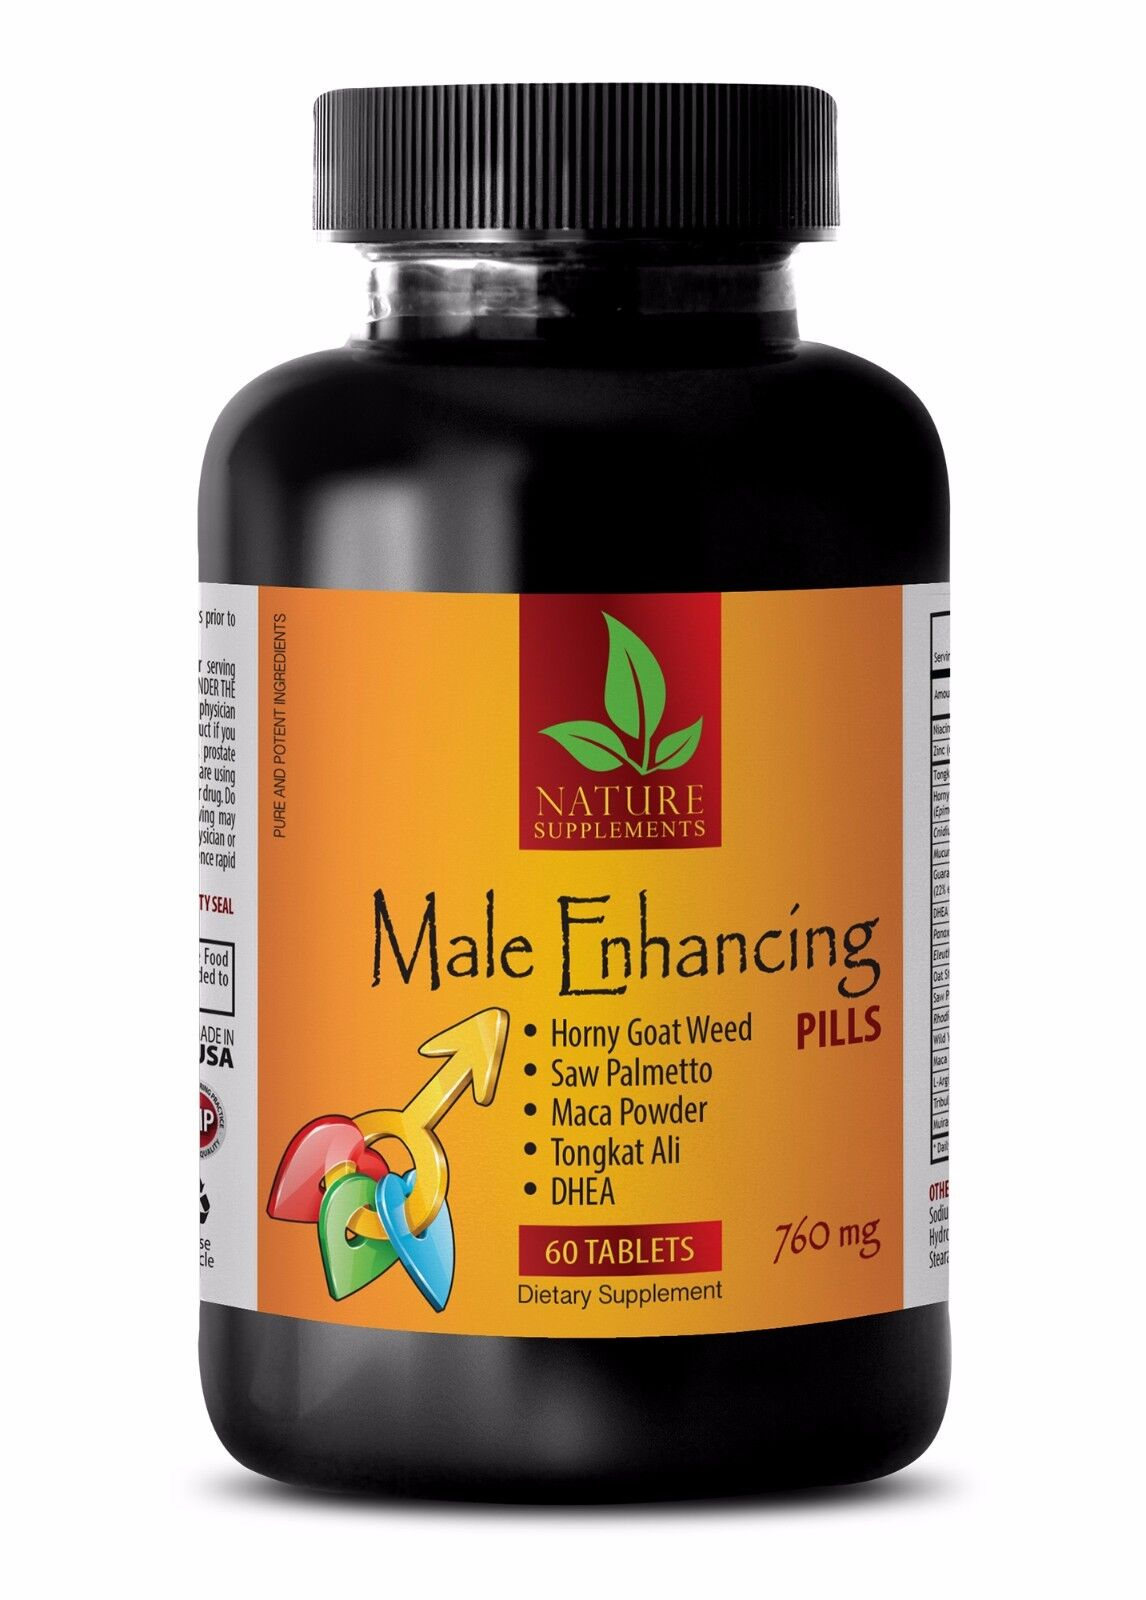 muscle mass gainer - MALE ENHANCING PILLS 1B - horny goat we